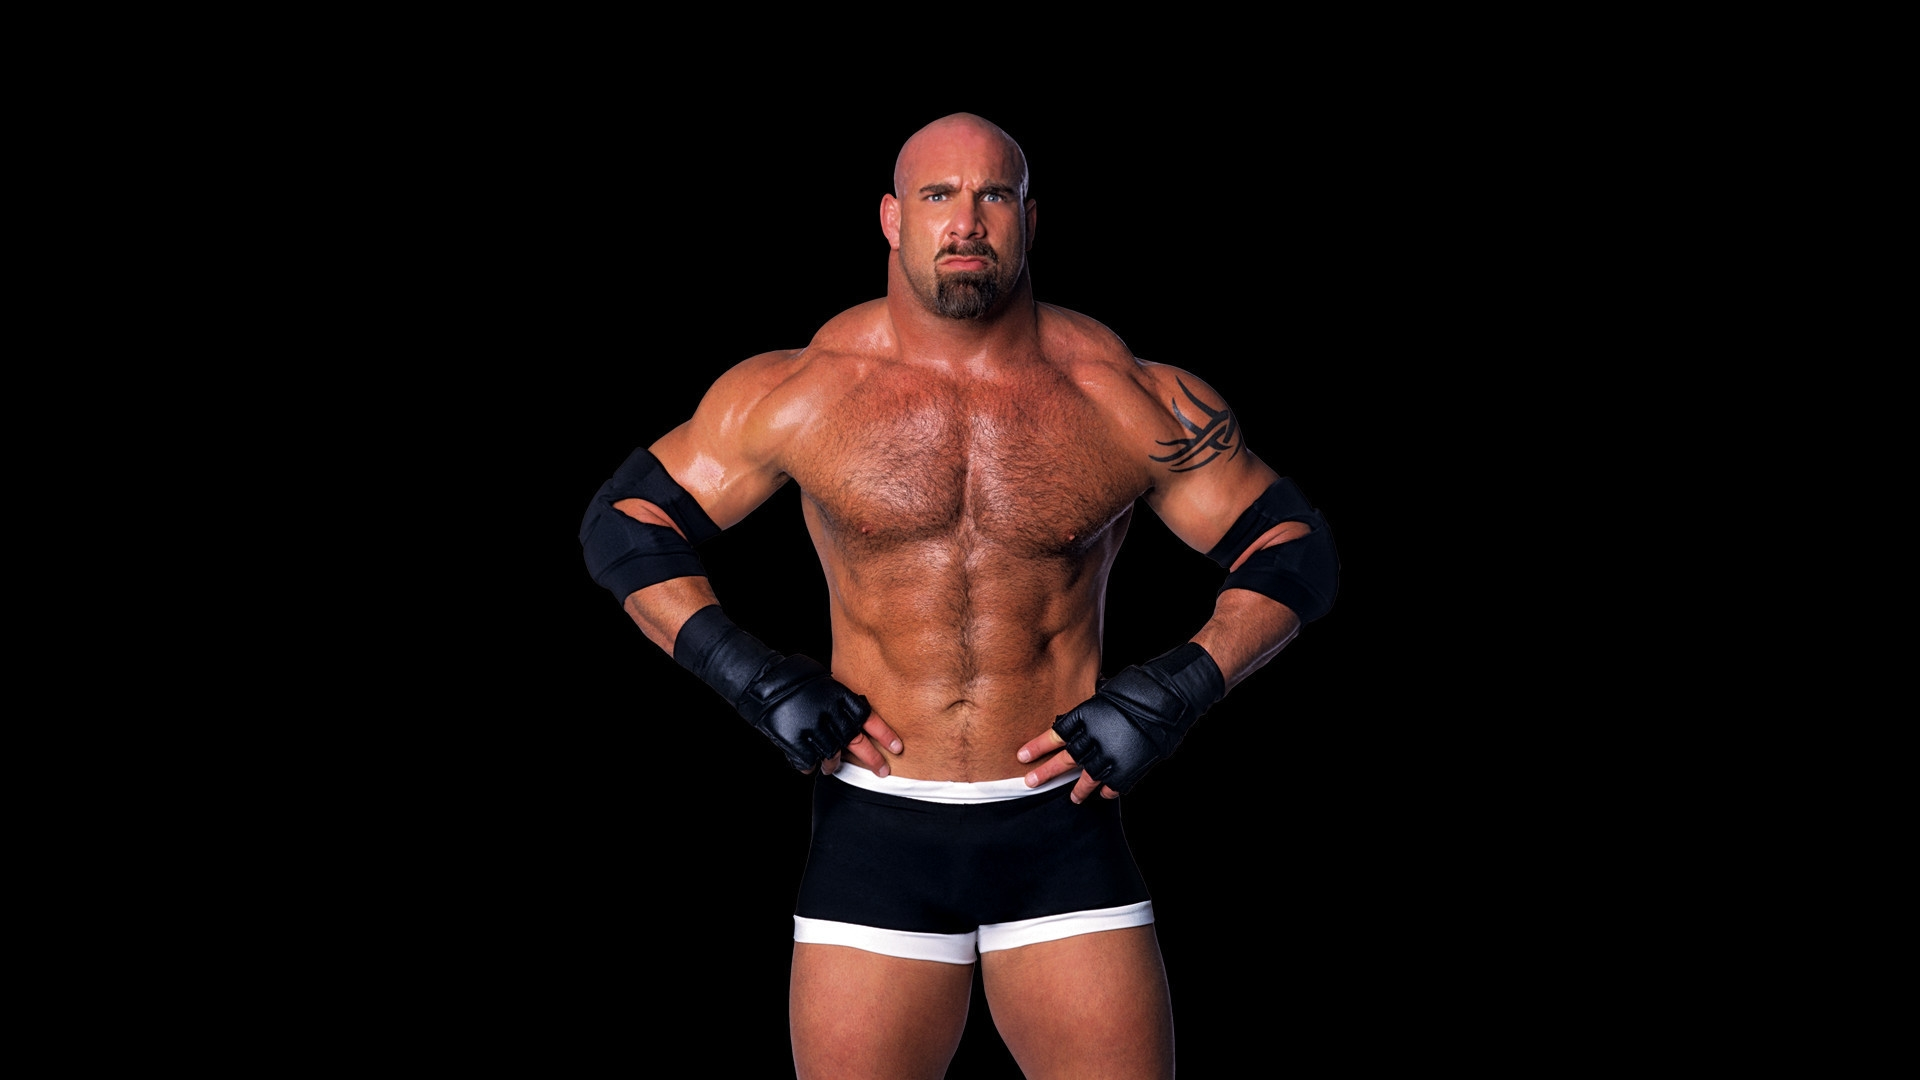 goldberg wwe free hd wallpaper